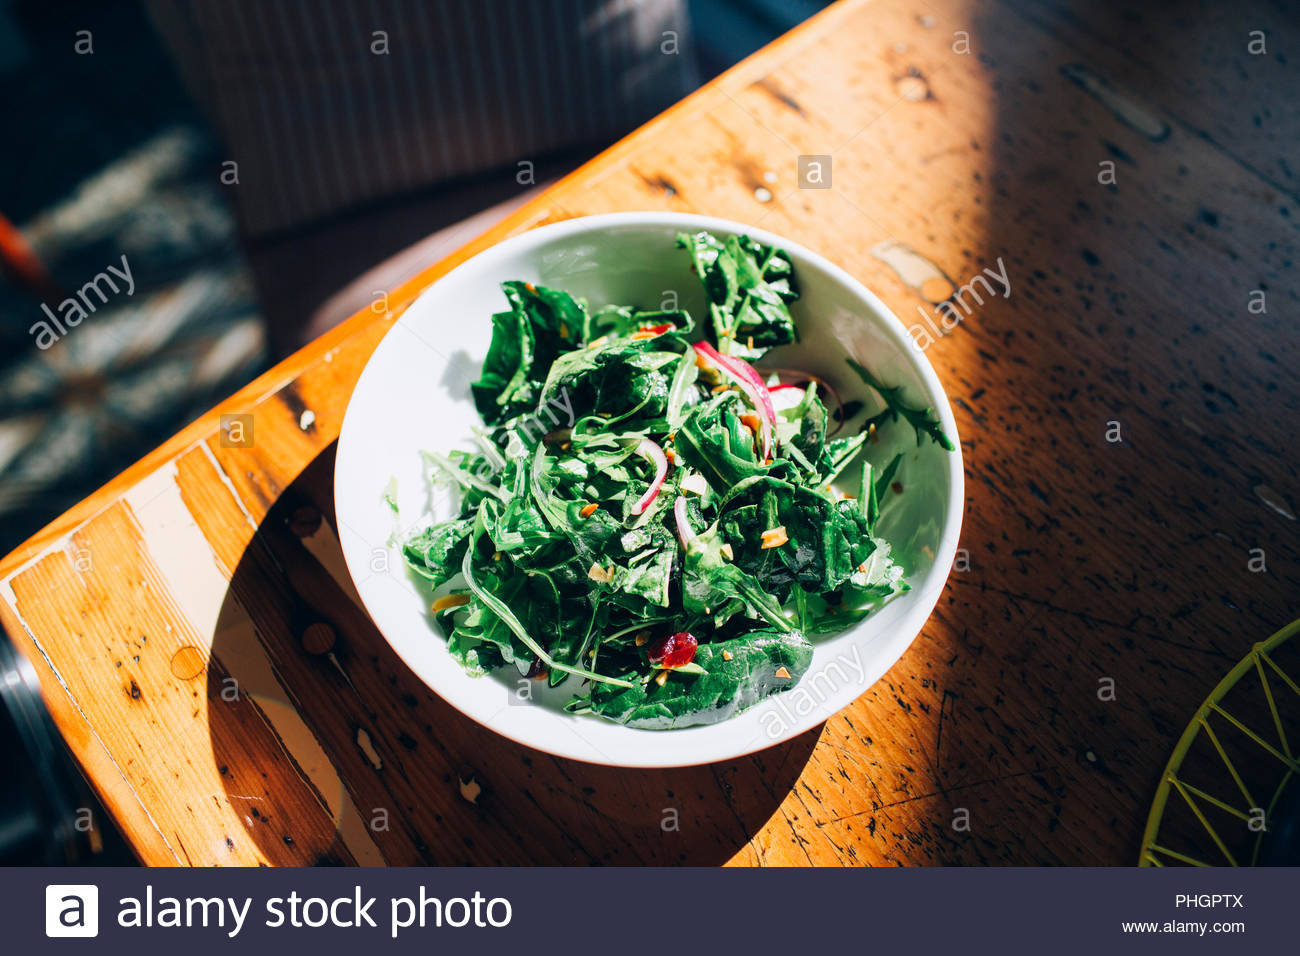 Salad on a wooden tabletop - Stock Image